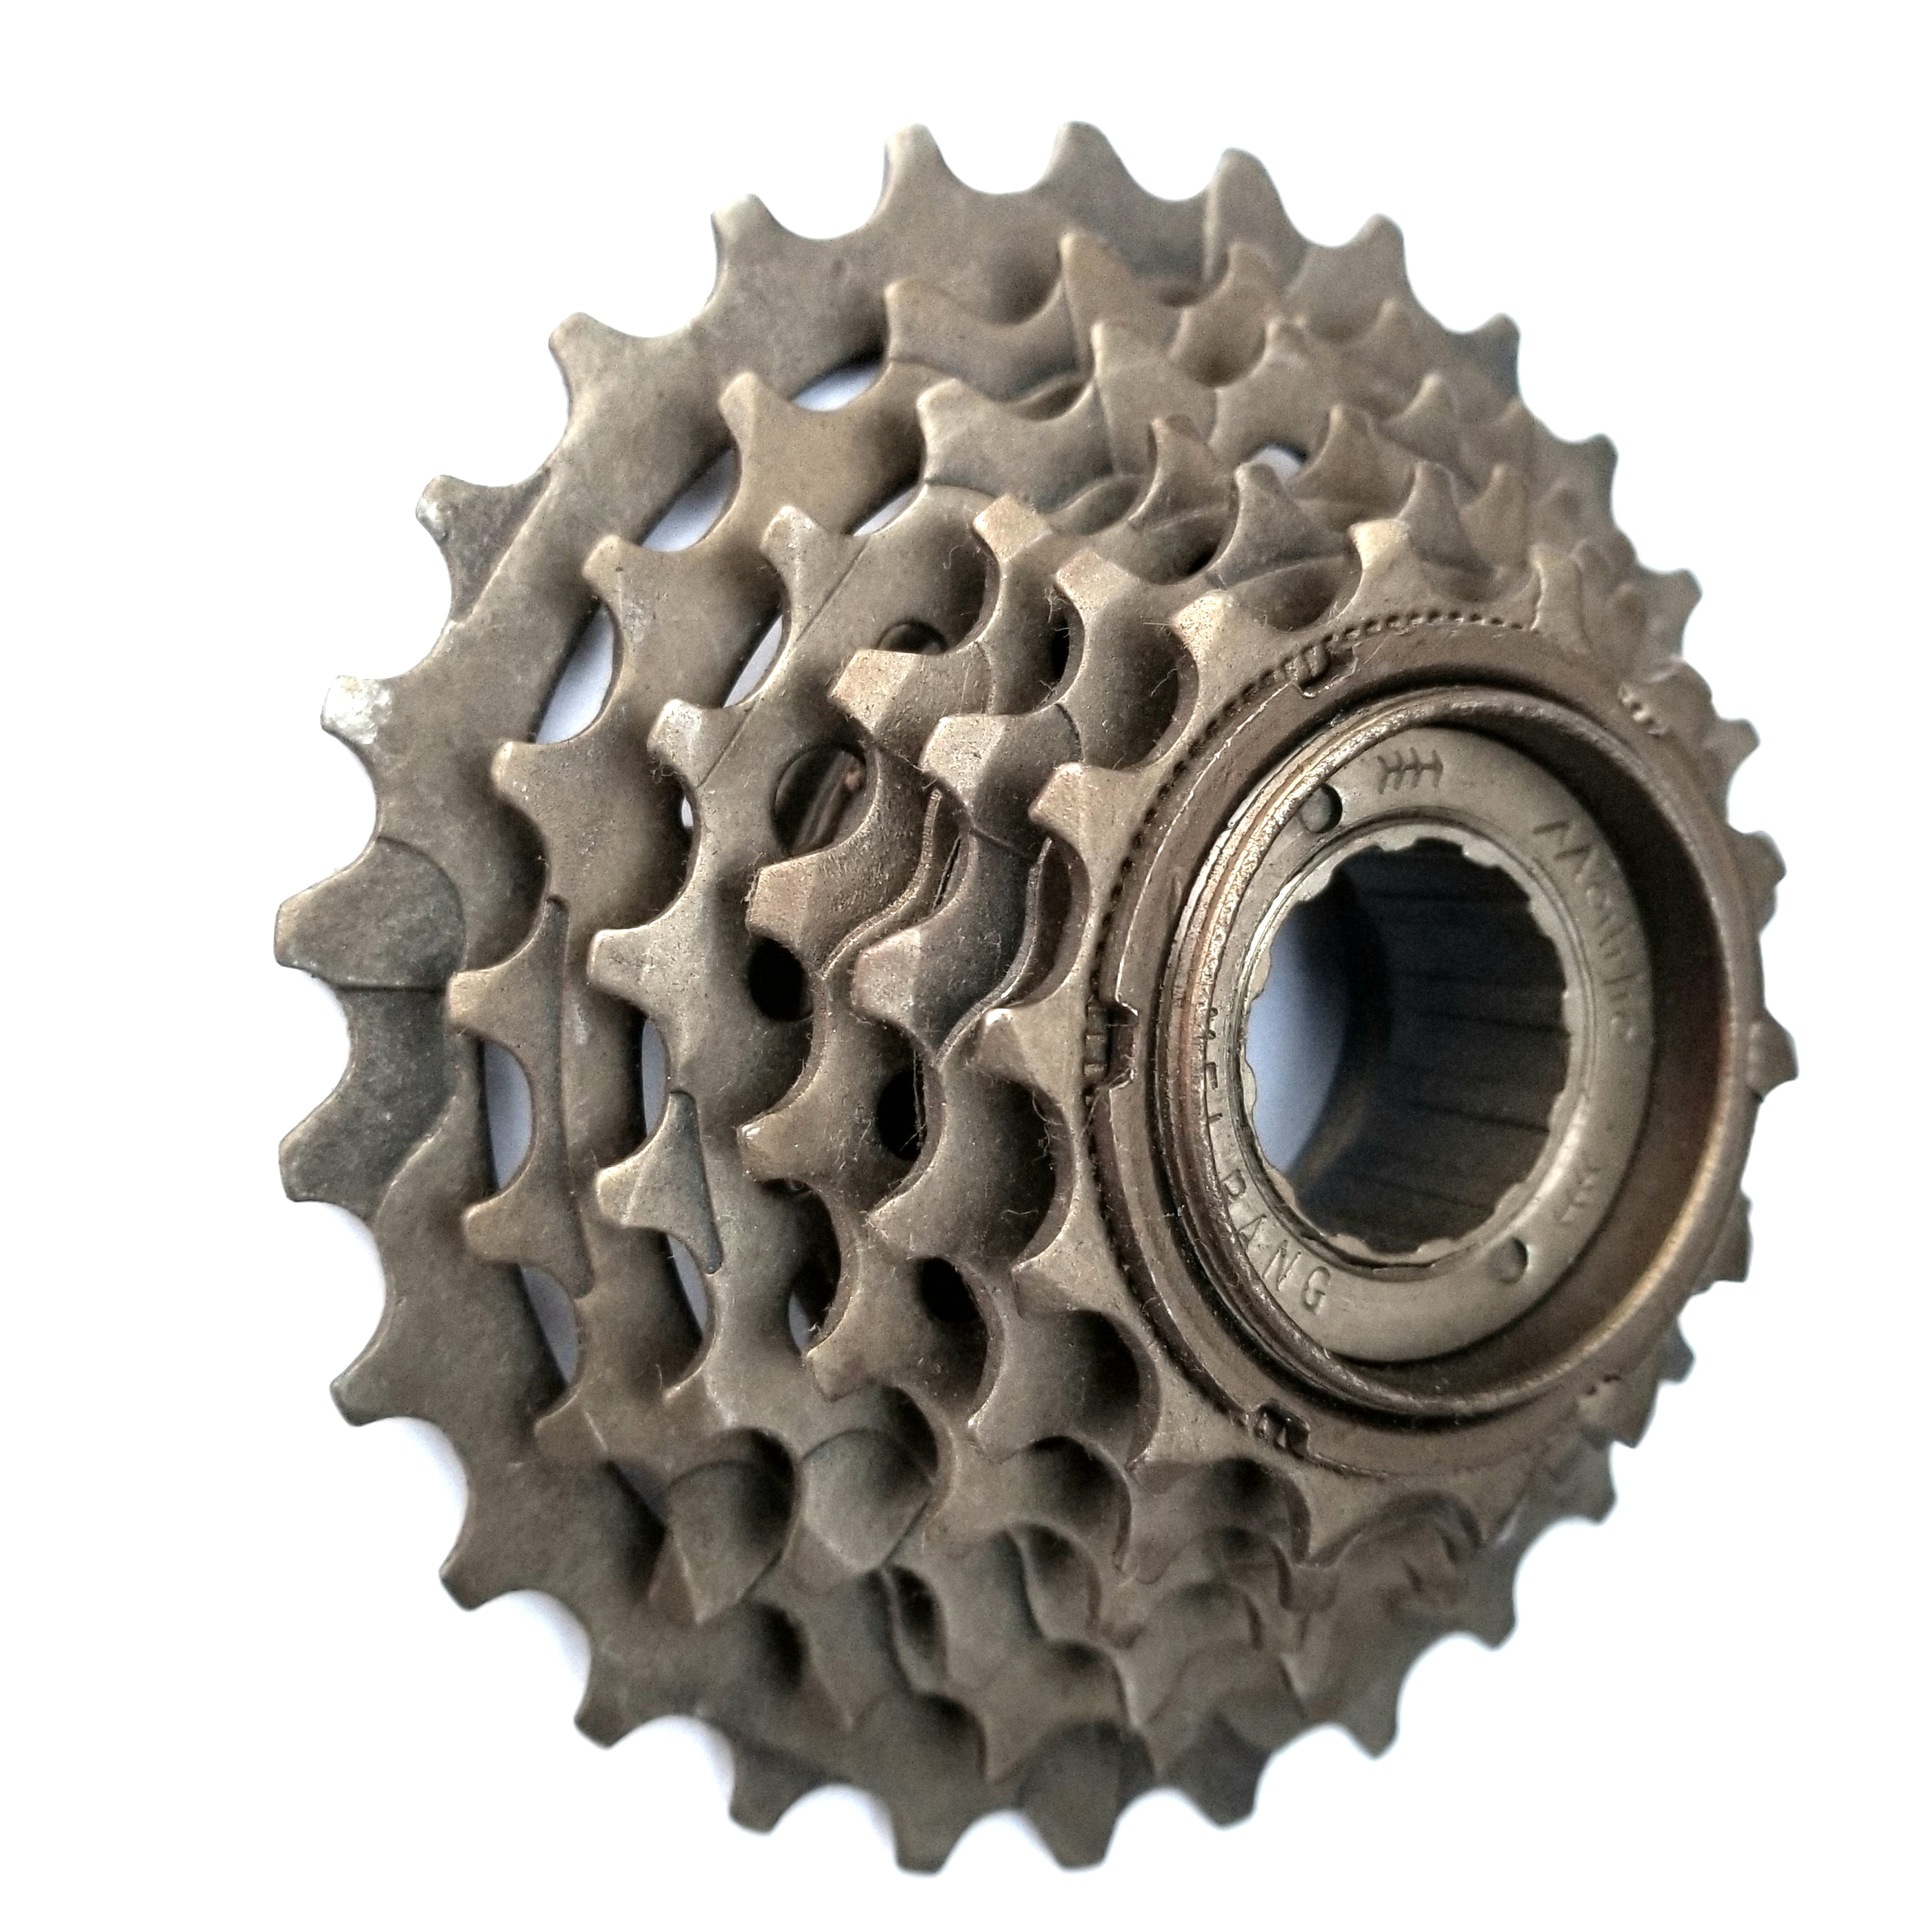 Flywheel/White Driving Accessories 6-Piece Spin Fly Mountain Bike Accessories Six Pieces Cone Pulley High Quality Flywheel Yan A